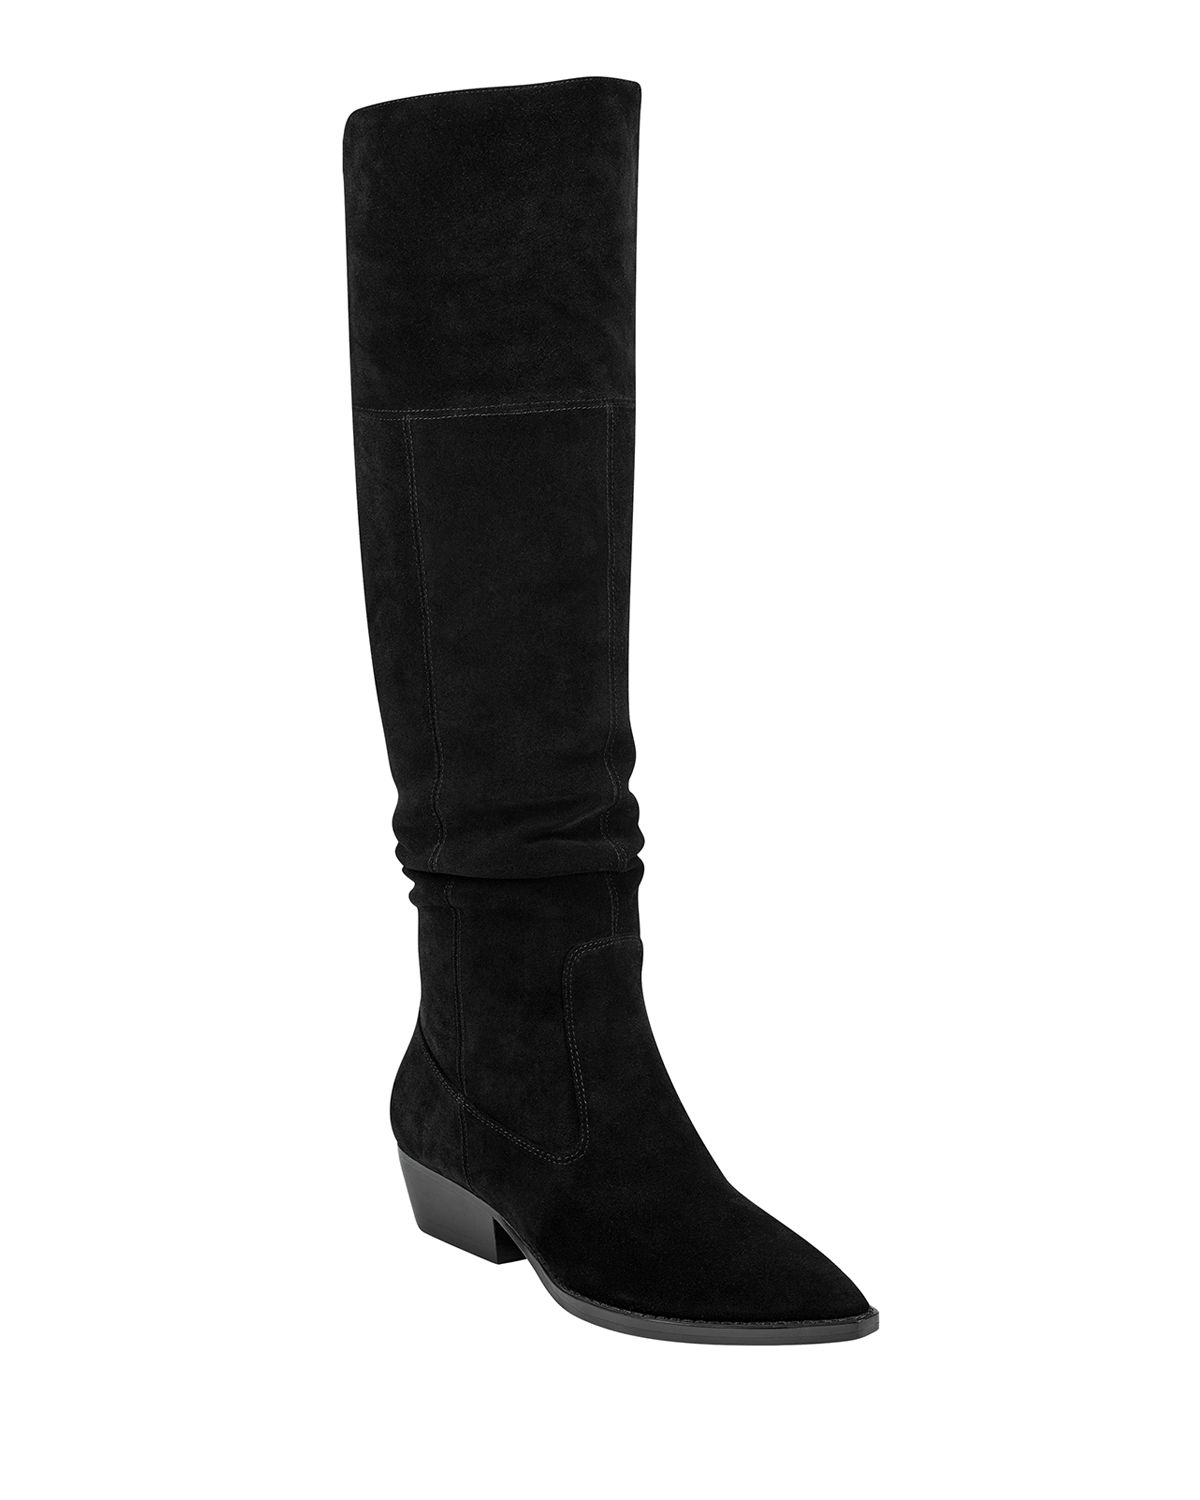 Oshi Over-The-Knee Boots